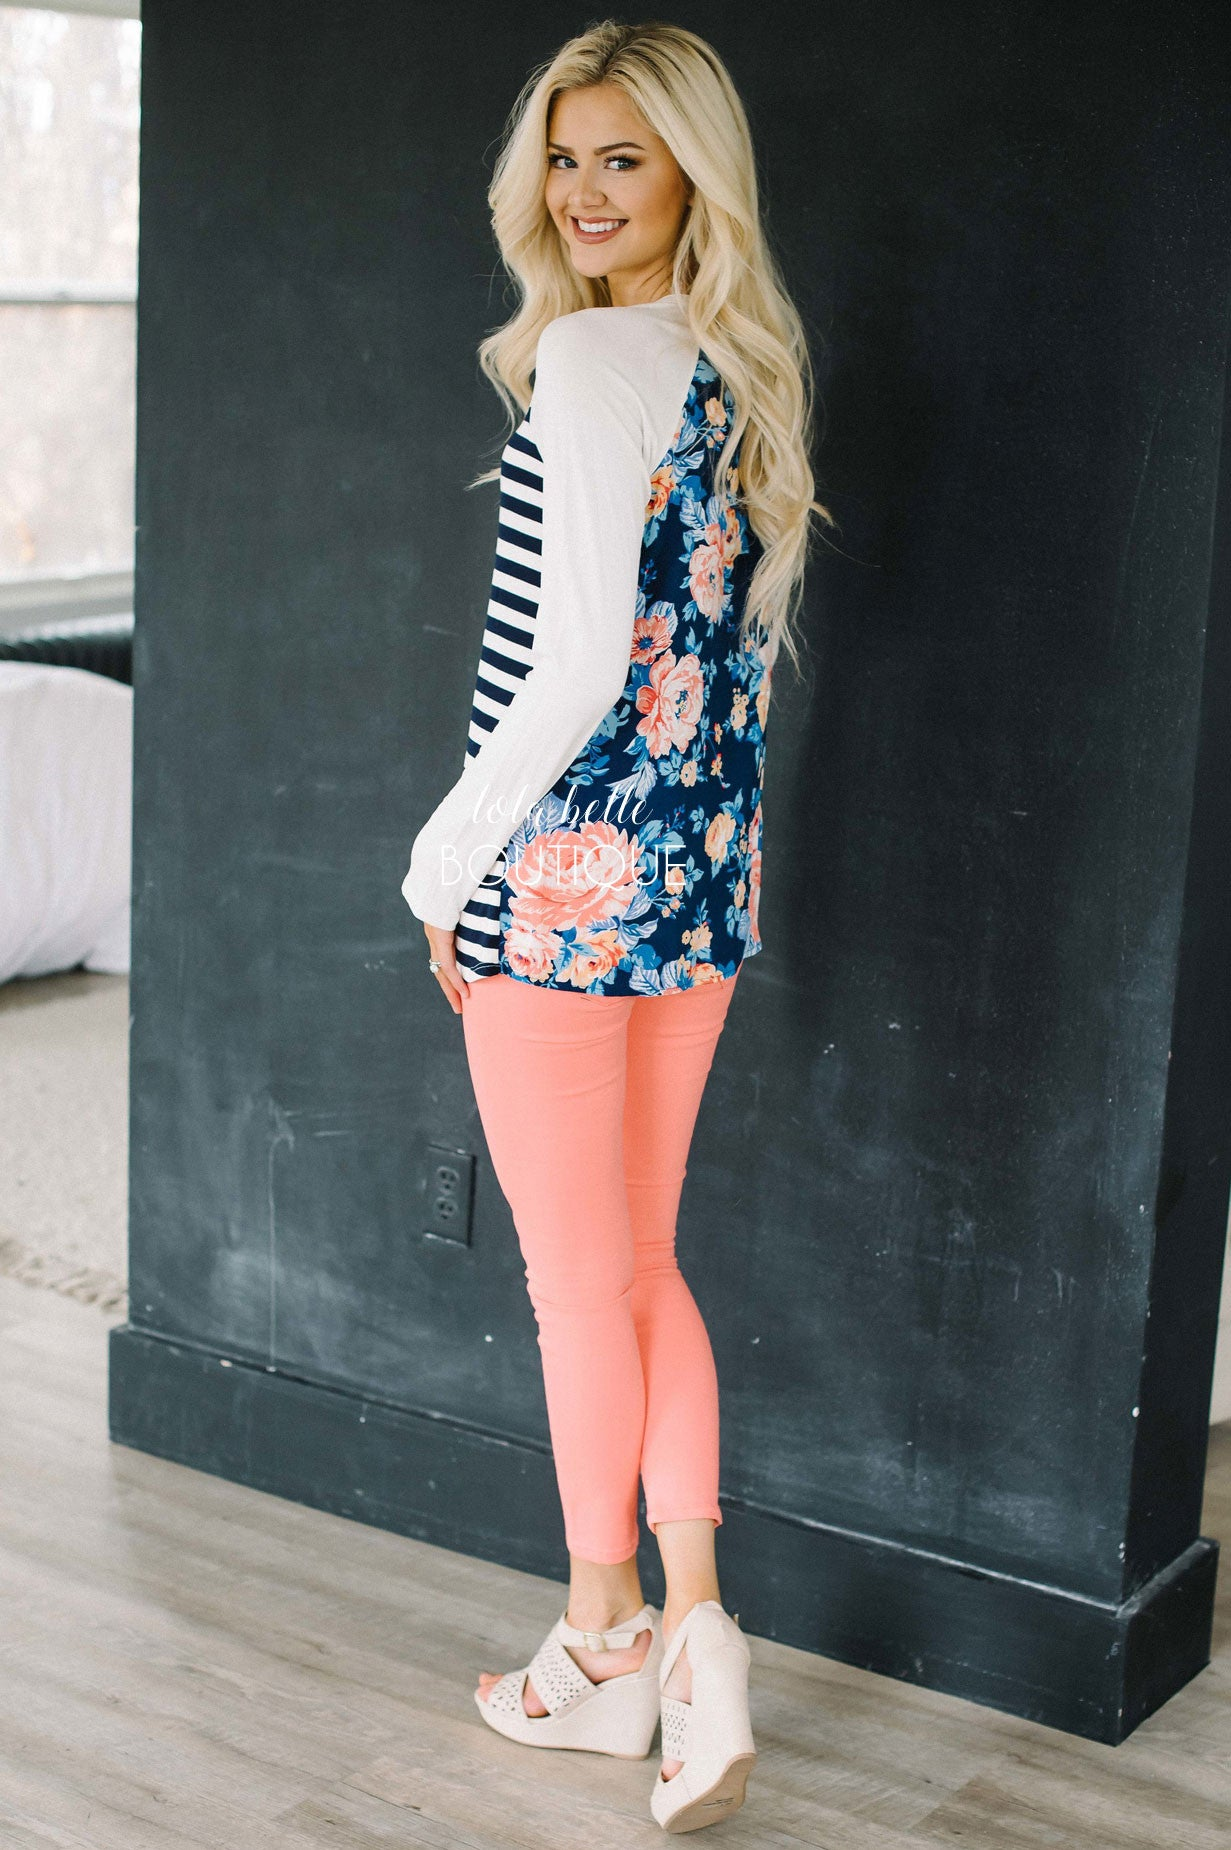 Stripes in The Front Floral on the Back Top